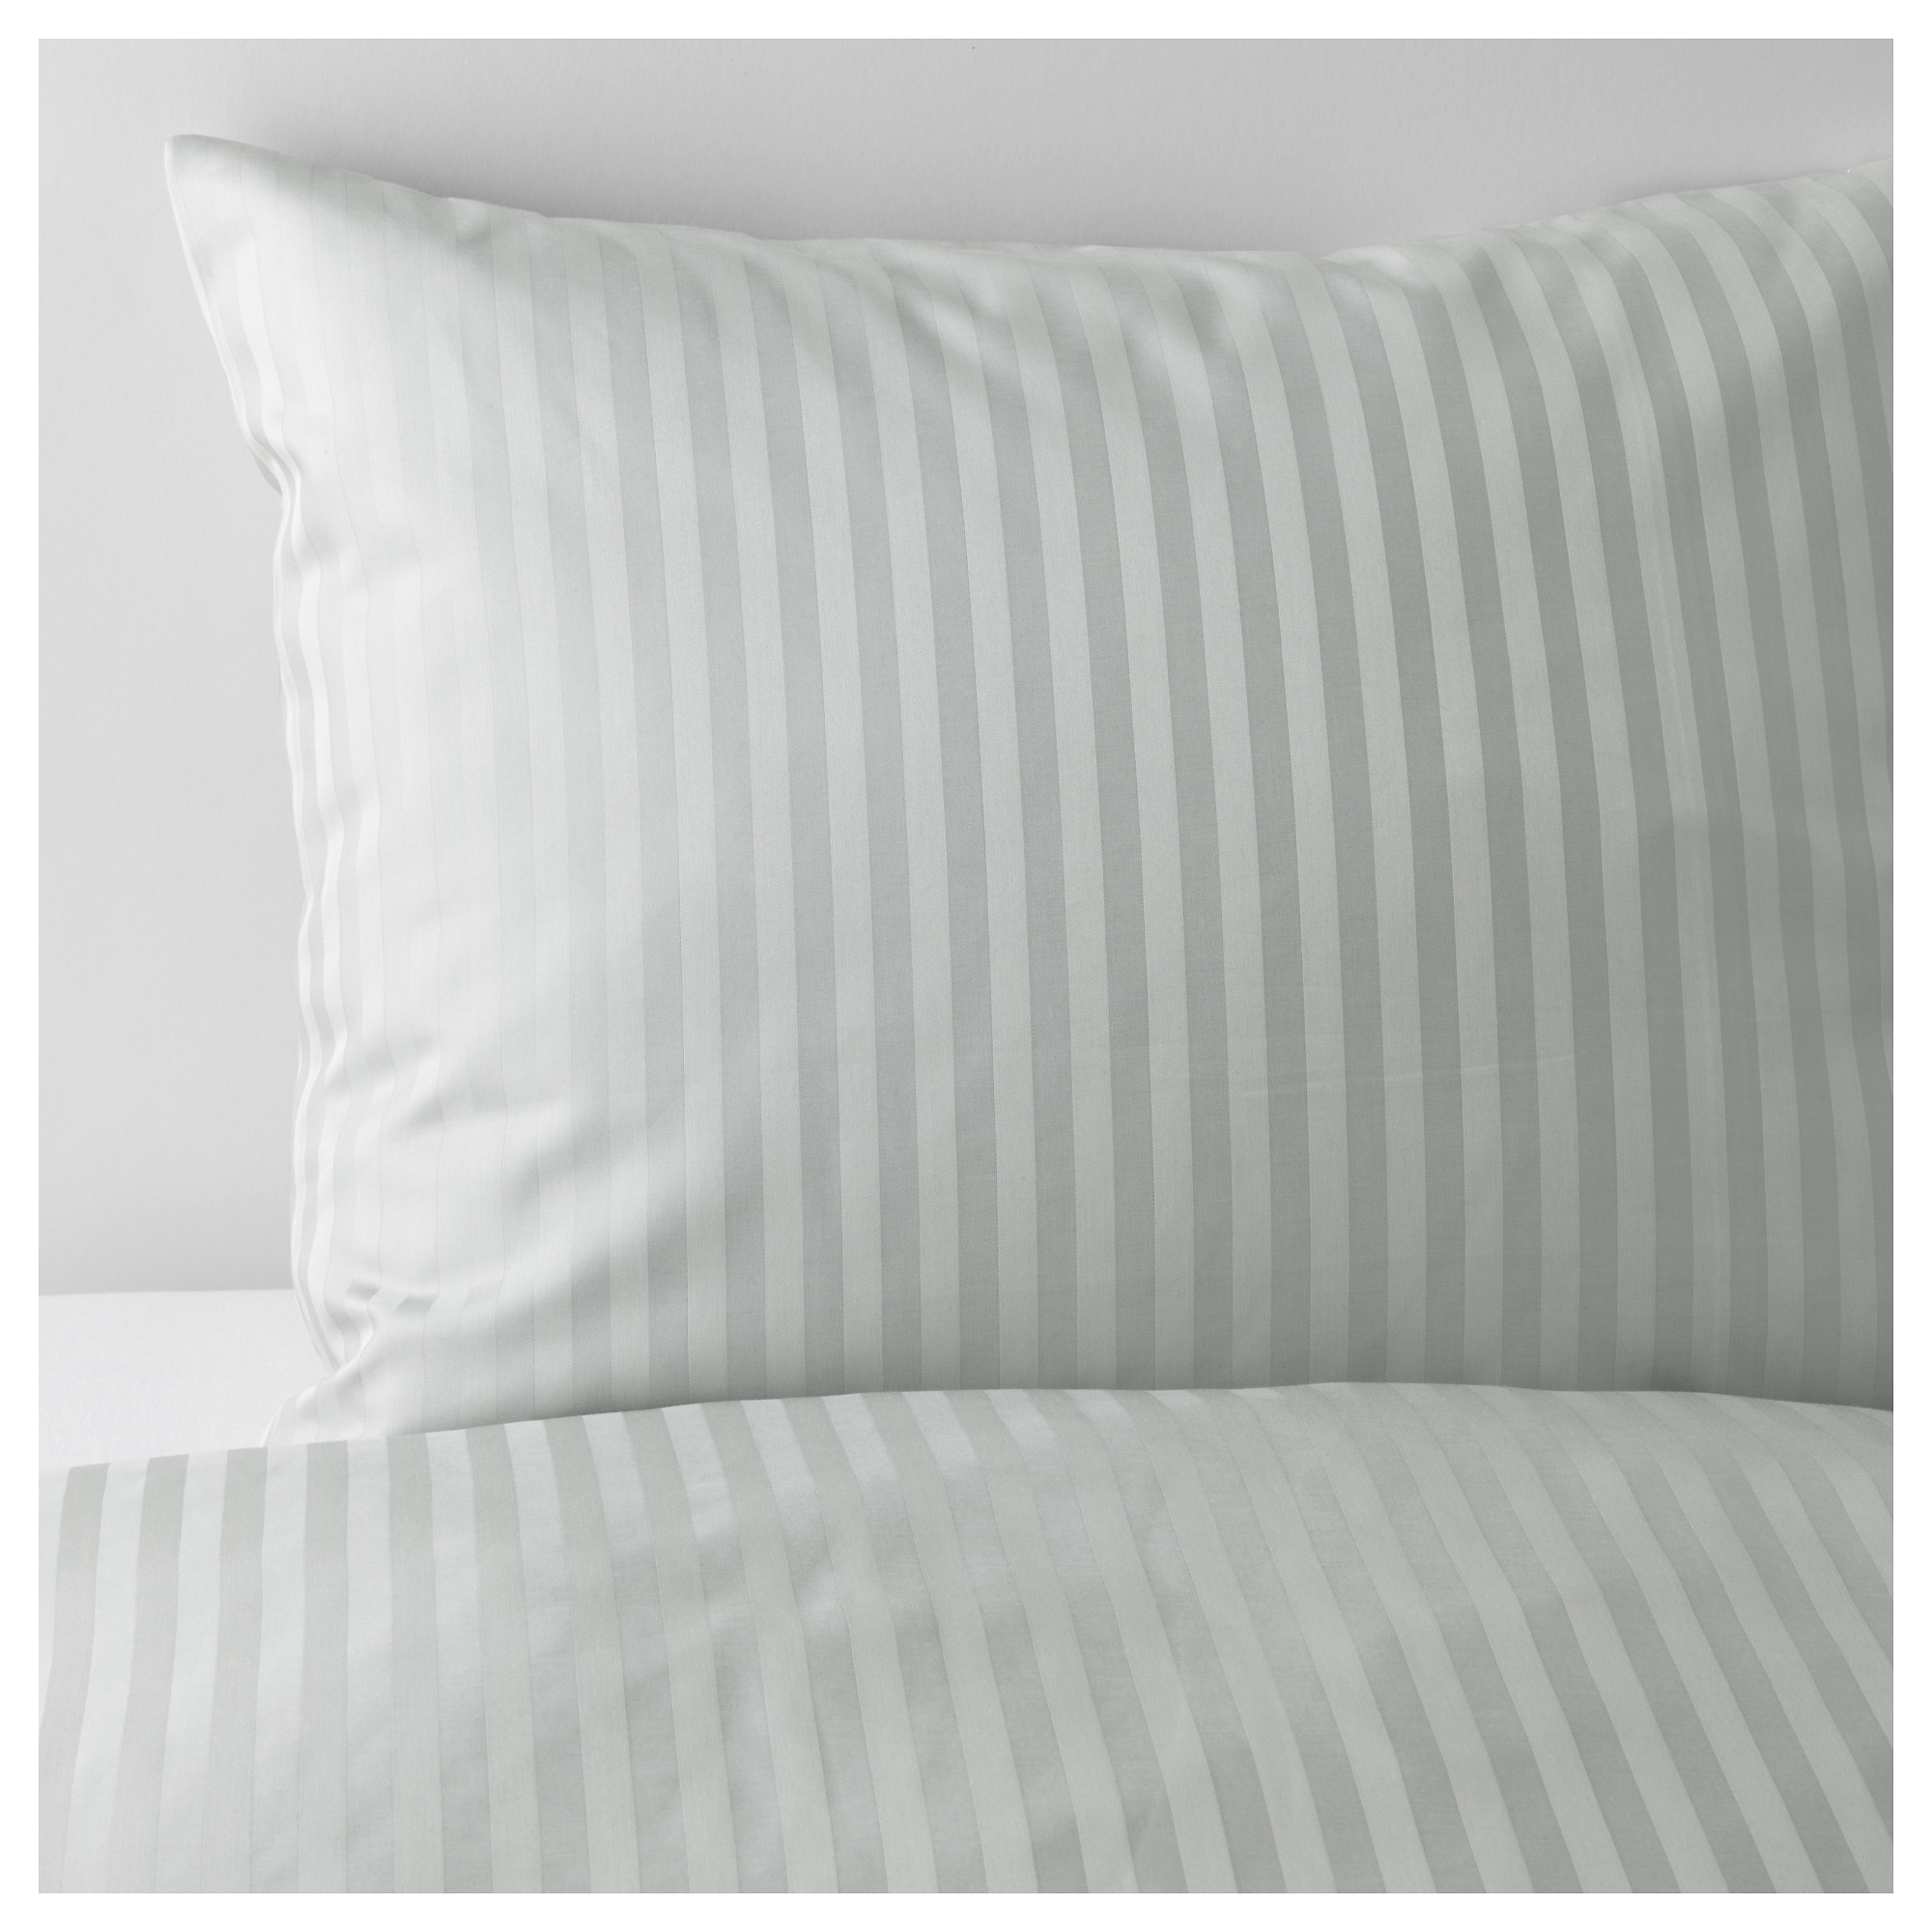 Design Ikea Bedding bedding bed linen ikea nattjasmin duvet cover and pillowcases light gray thread count 310